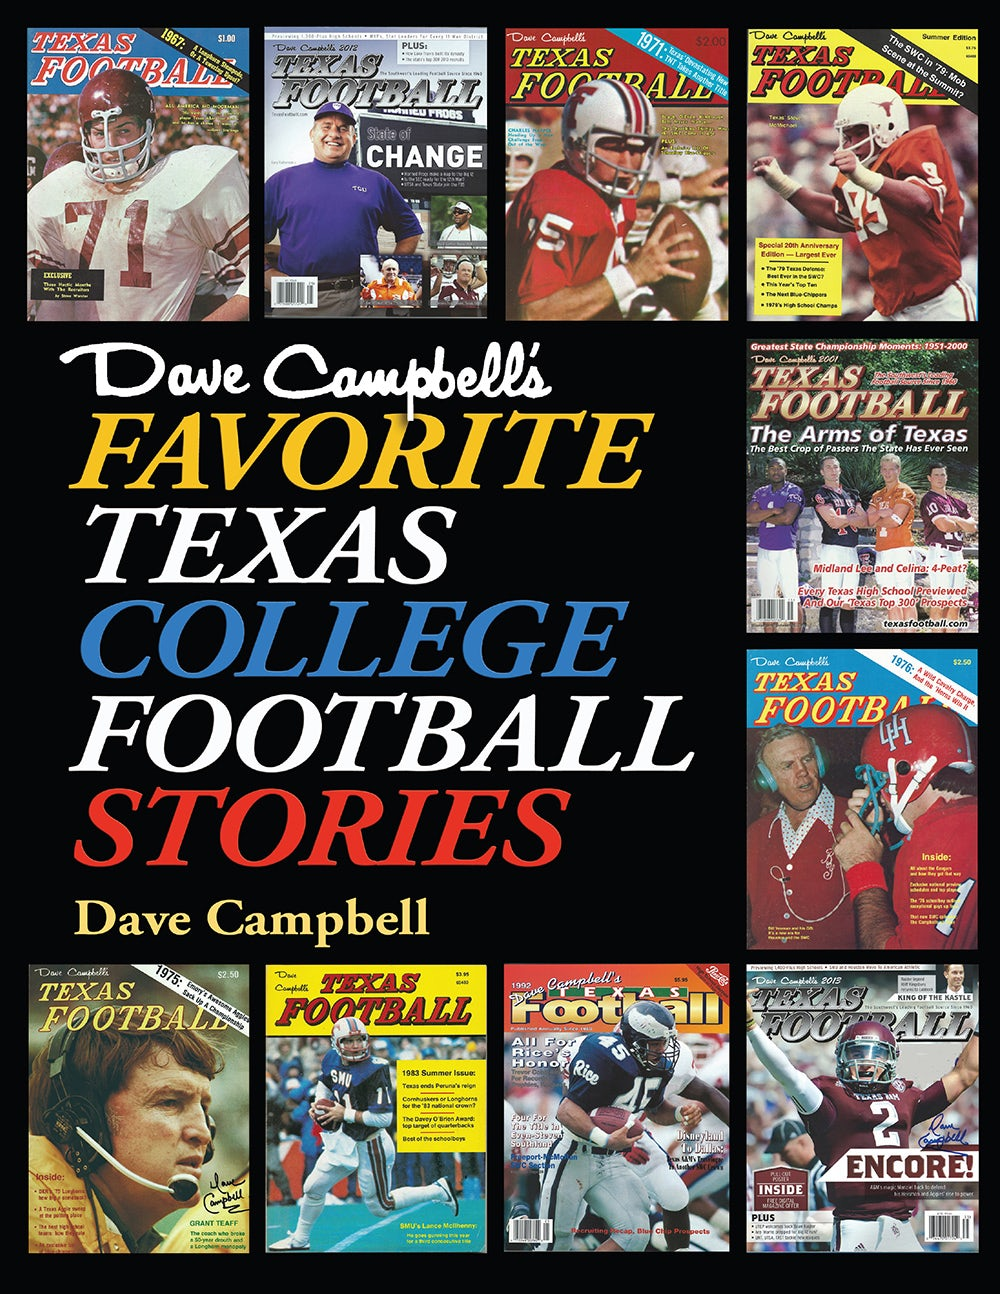 54e764e97da Dave Campbell's Favorite Texas College Football Stories